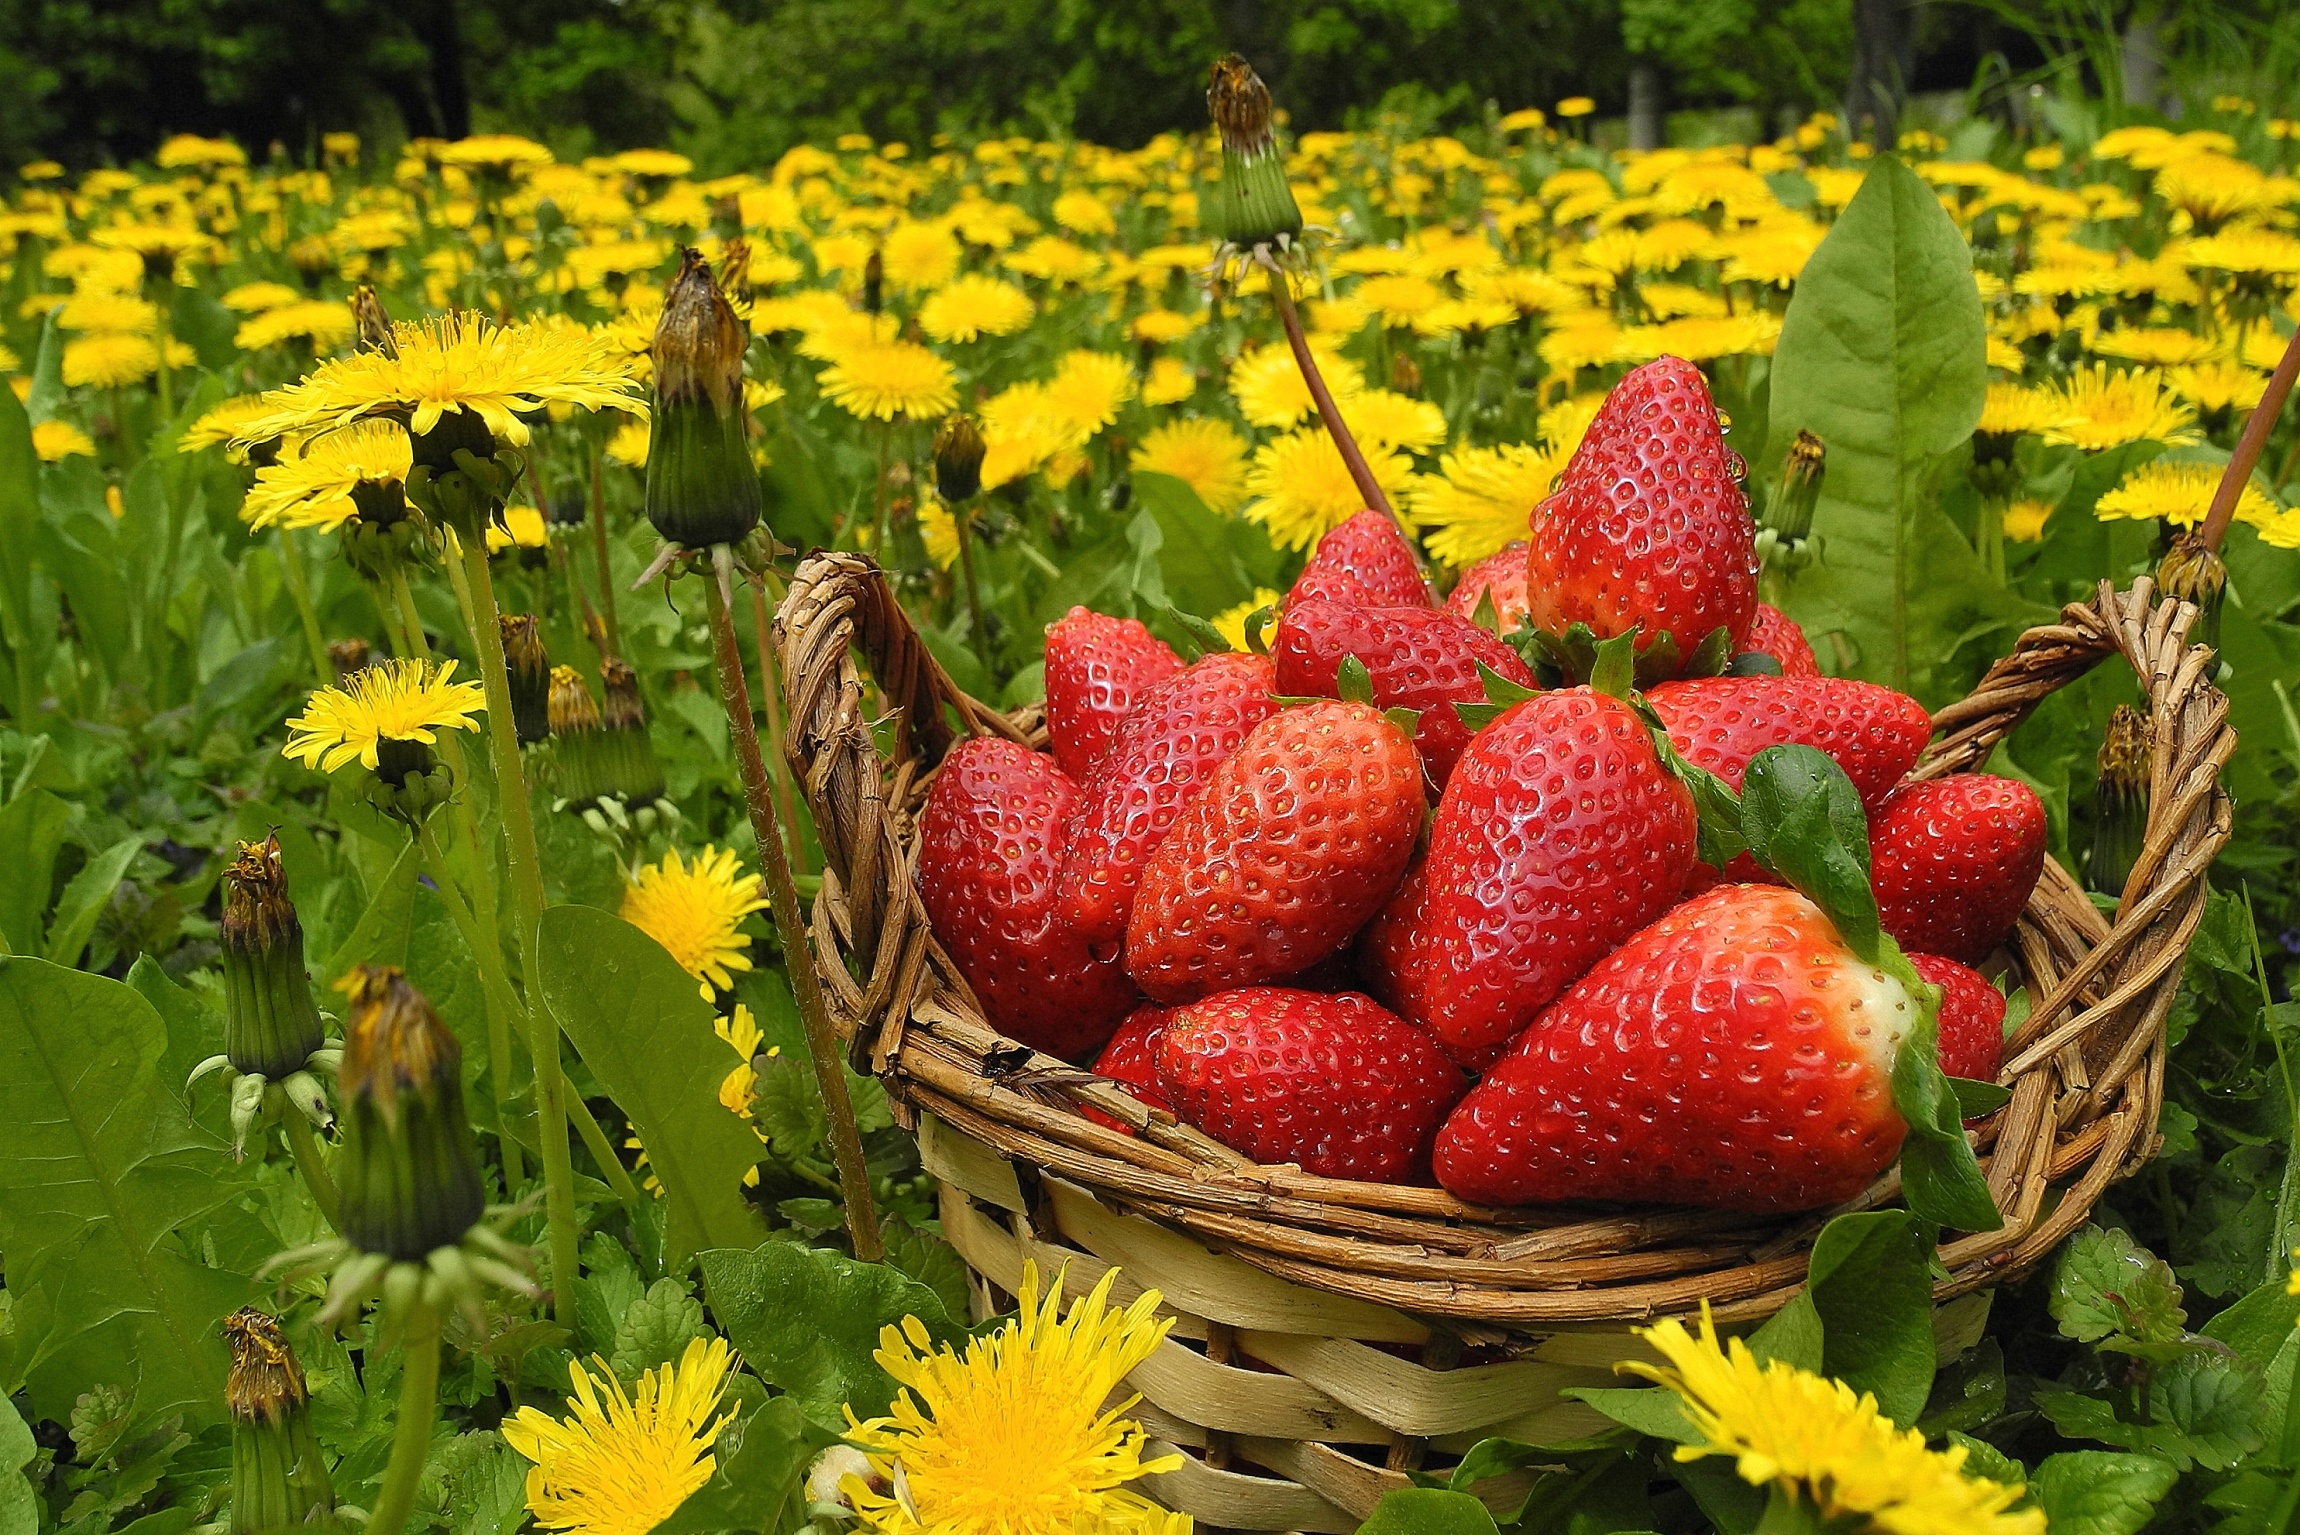 Strawberry Full HD Wallpaper and Background Image ...